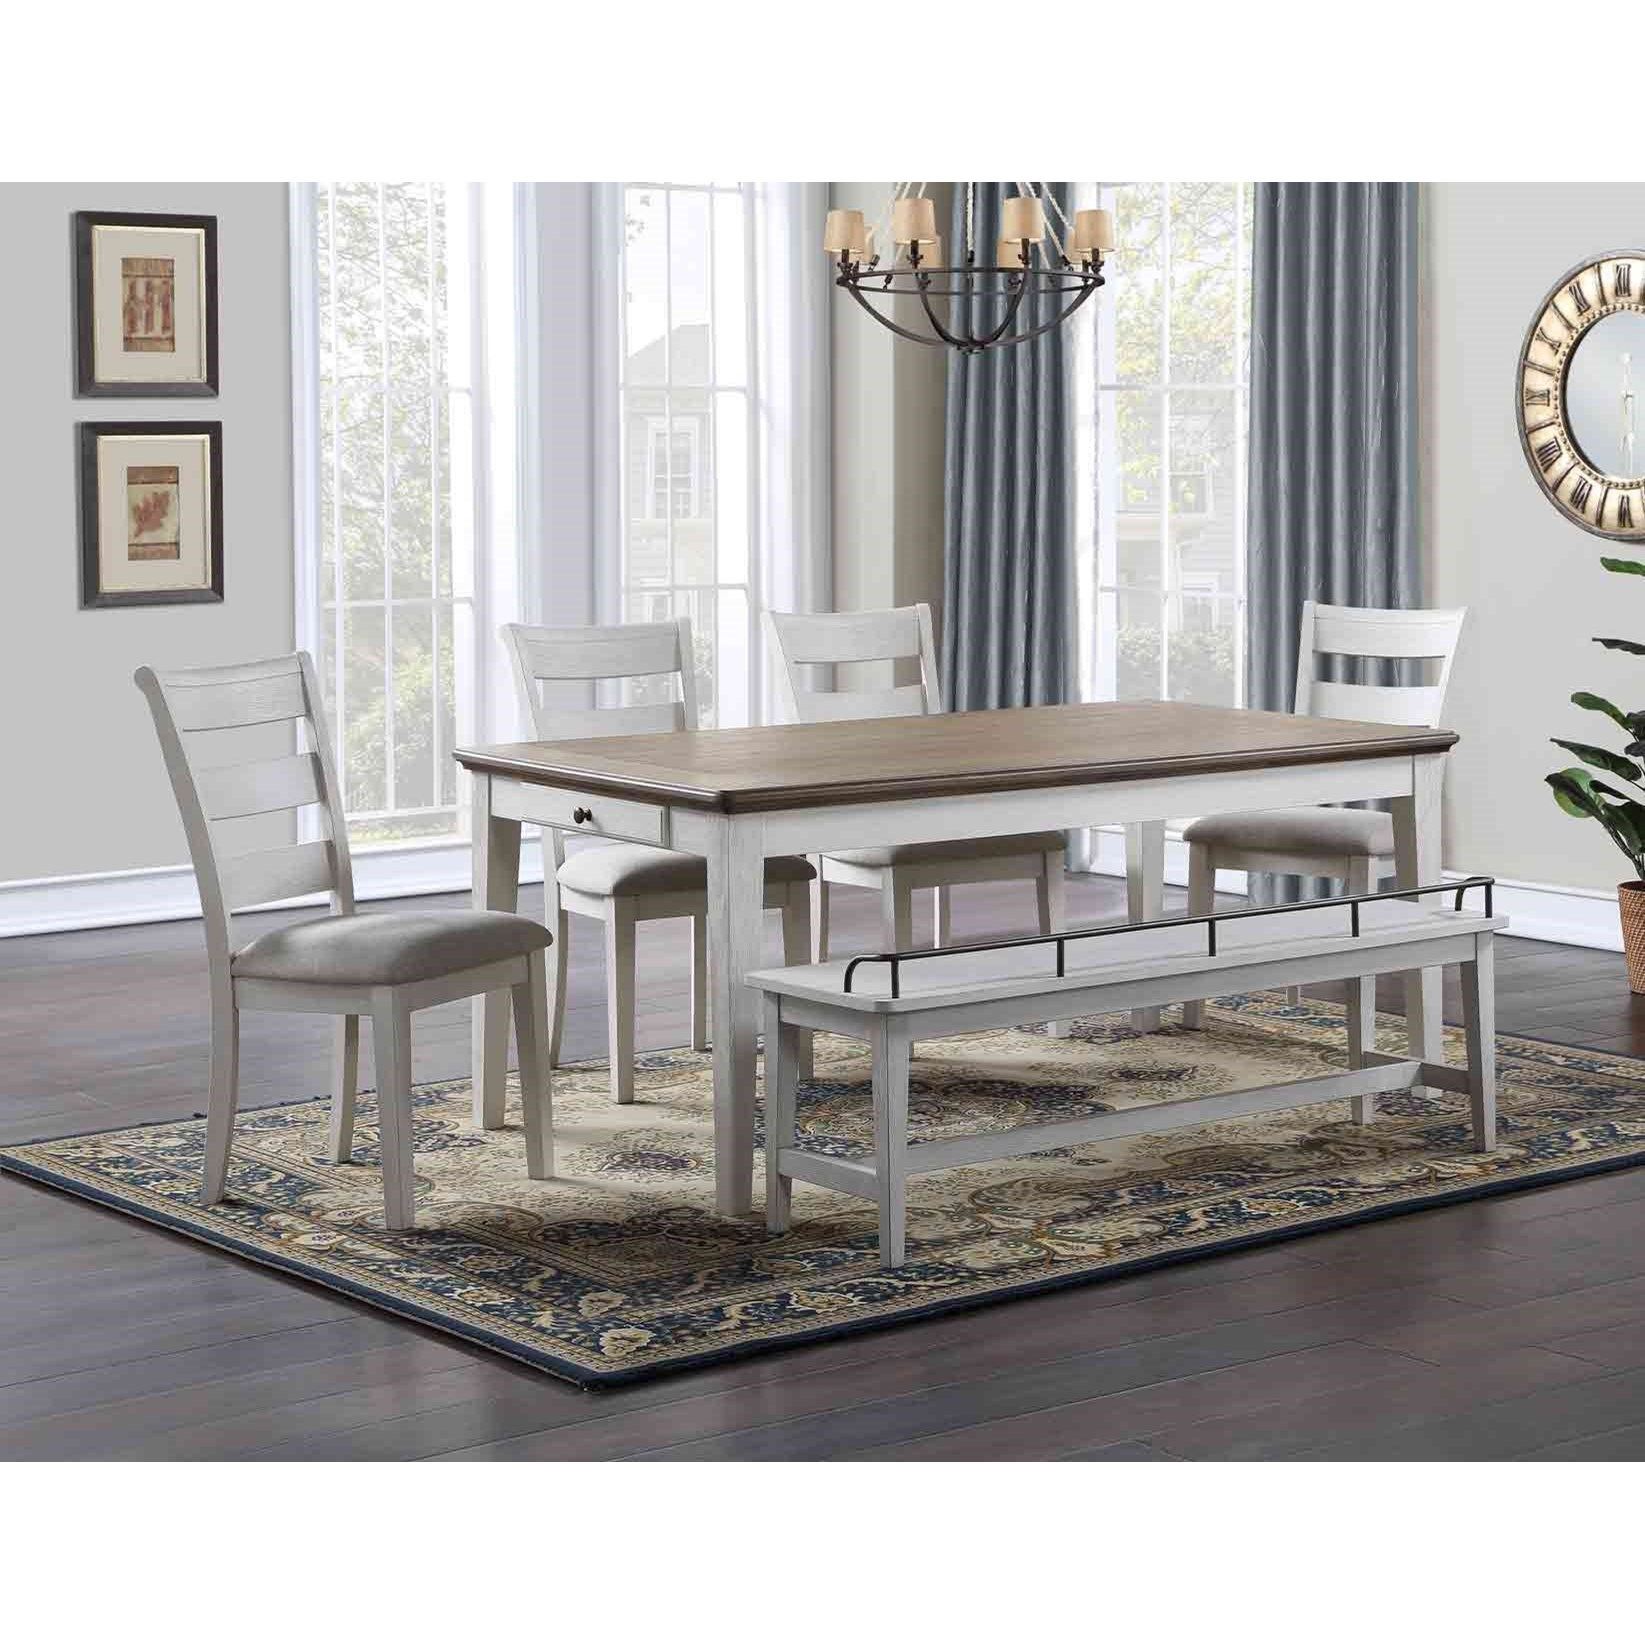 Pendleton 6-Piece Formal Dining Set with Bench  by Steve Silver at Van Hill Furniture